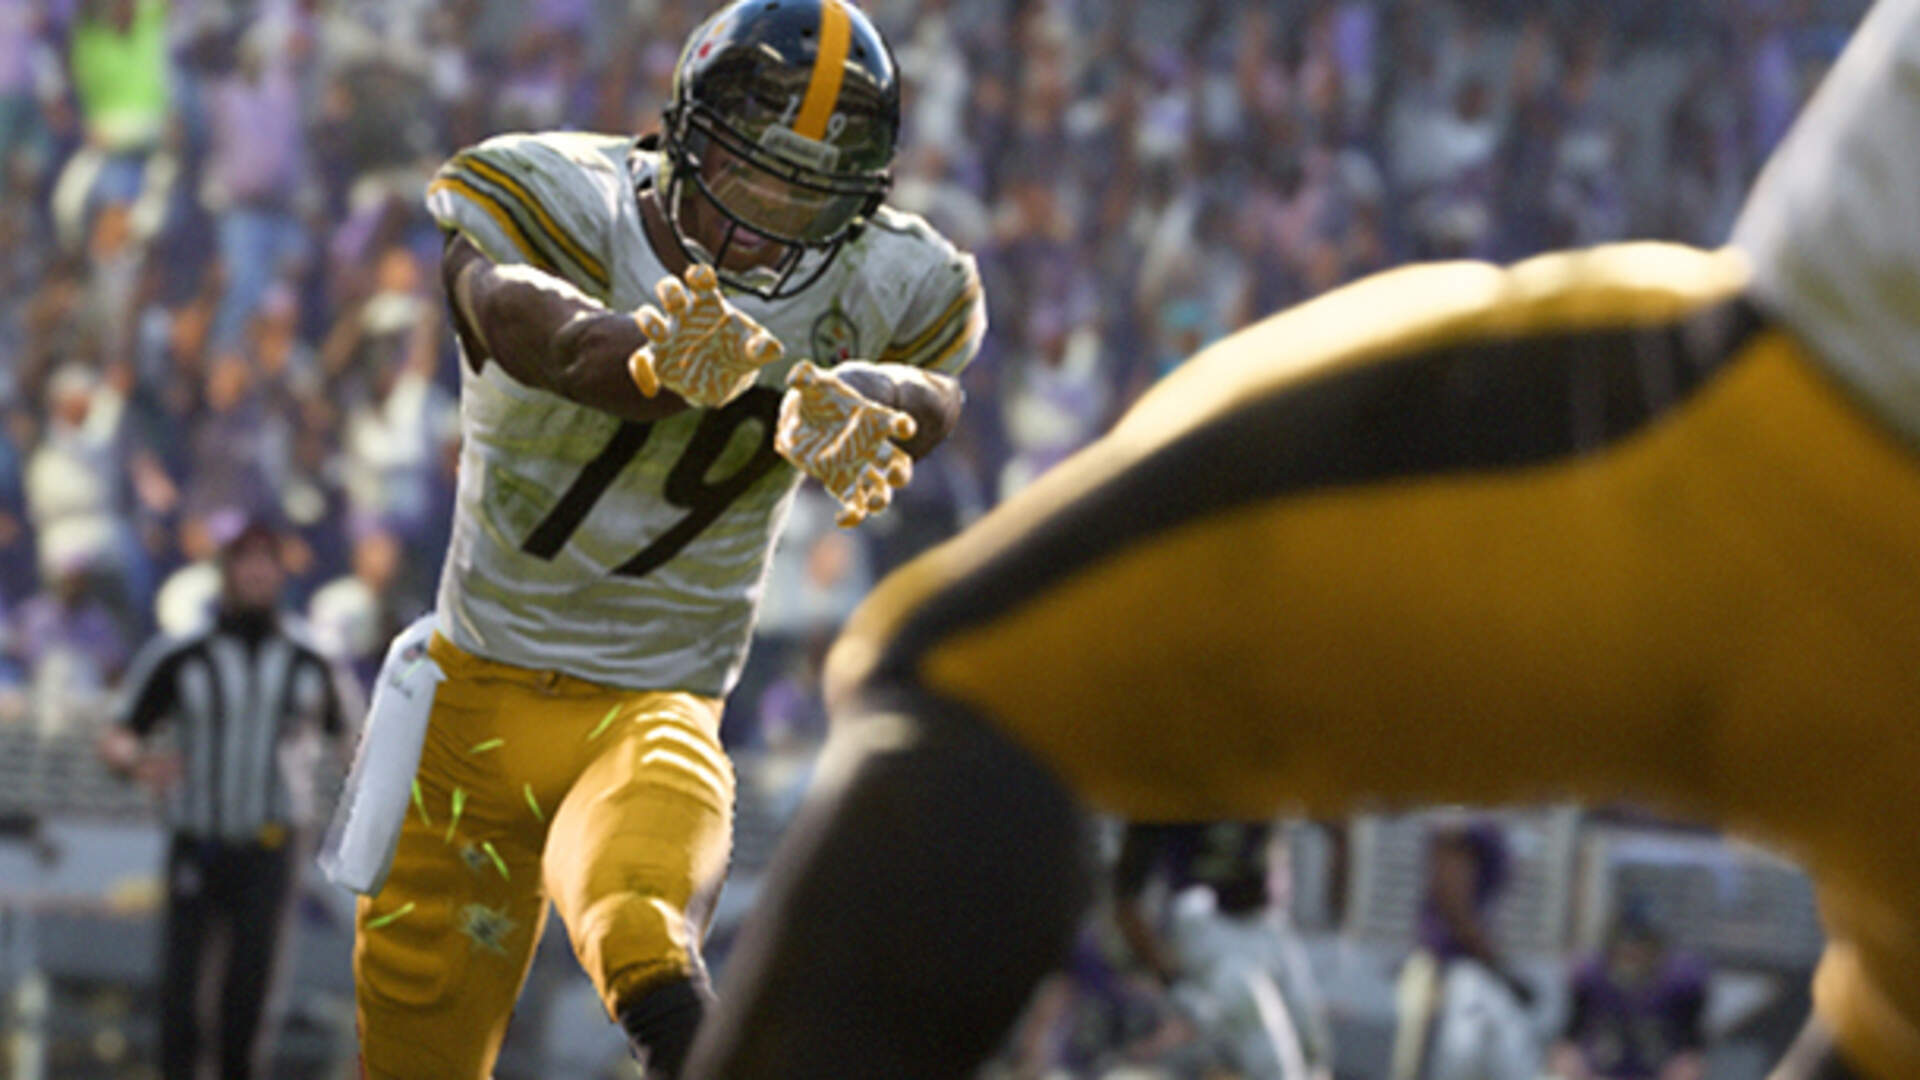 Madden 19 Gameplay Deep Dive: EA on One Cut, Push the Pile, RPO, New Kickoff Rules, and More